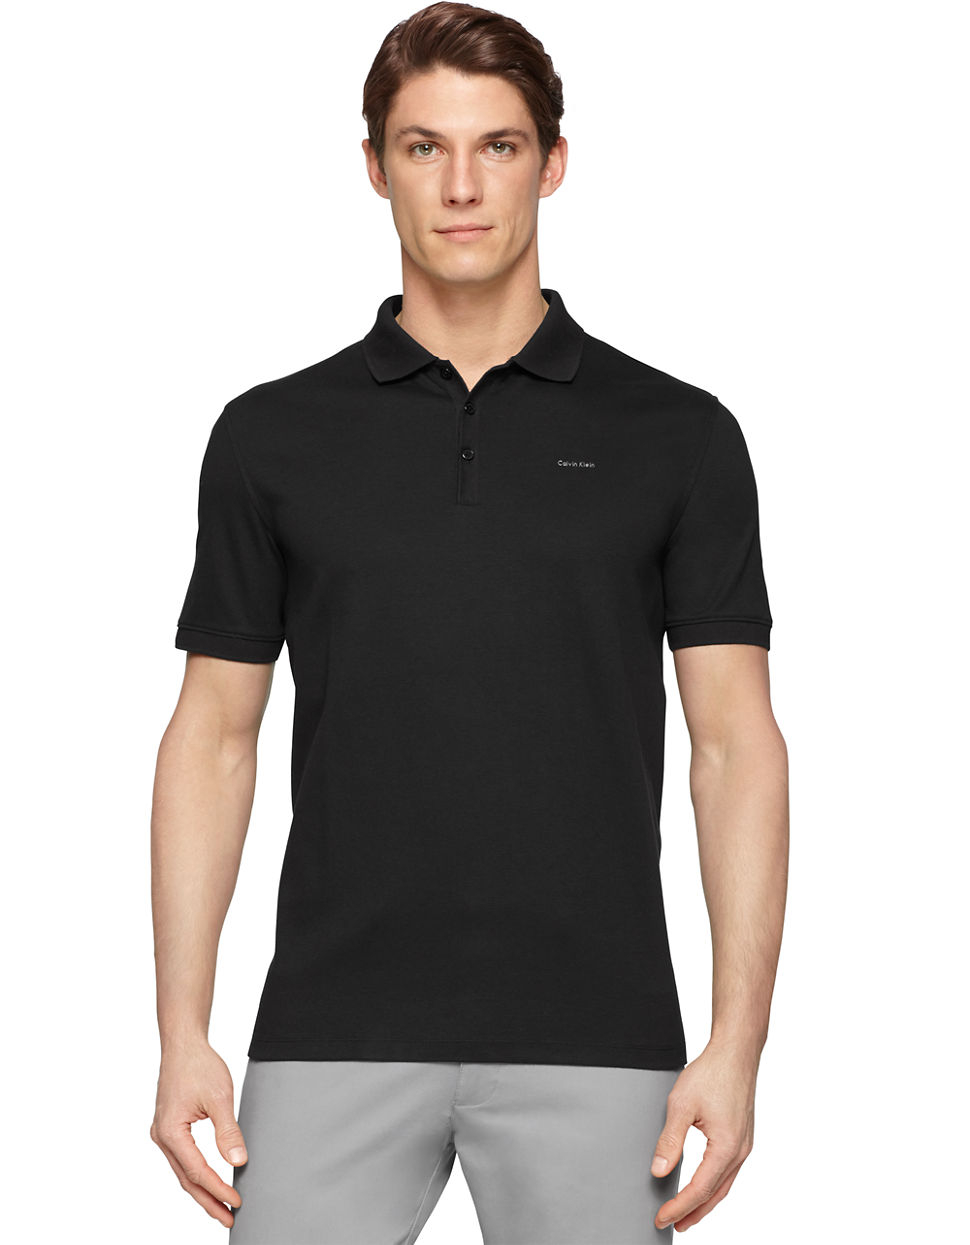 Calvin klein pima polo shirt in black for men lyst Man in polo shirt